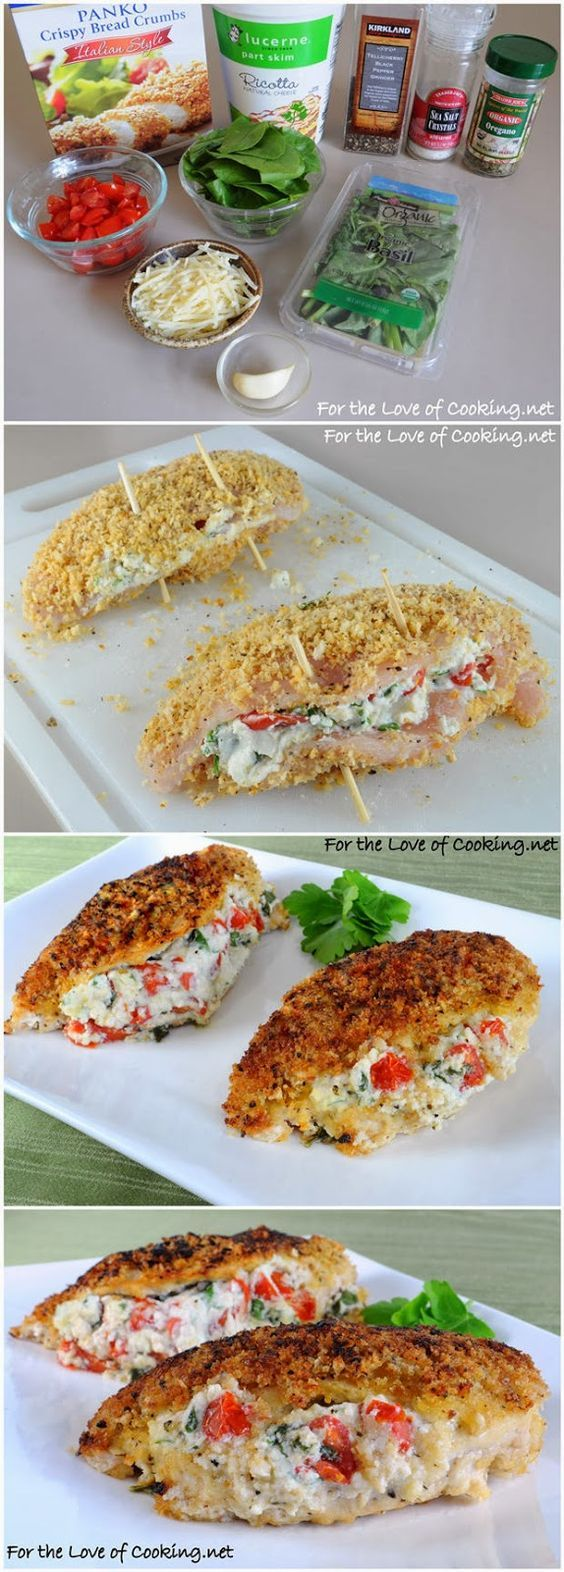 Panko Crusted Chicken Stuffed with Ricotta, Spinach, Tomatoes, and Basil - kiss recipe